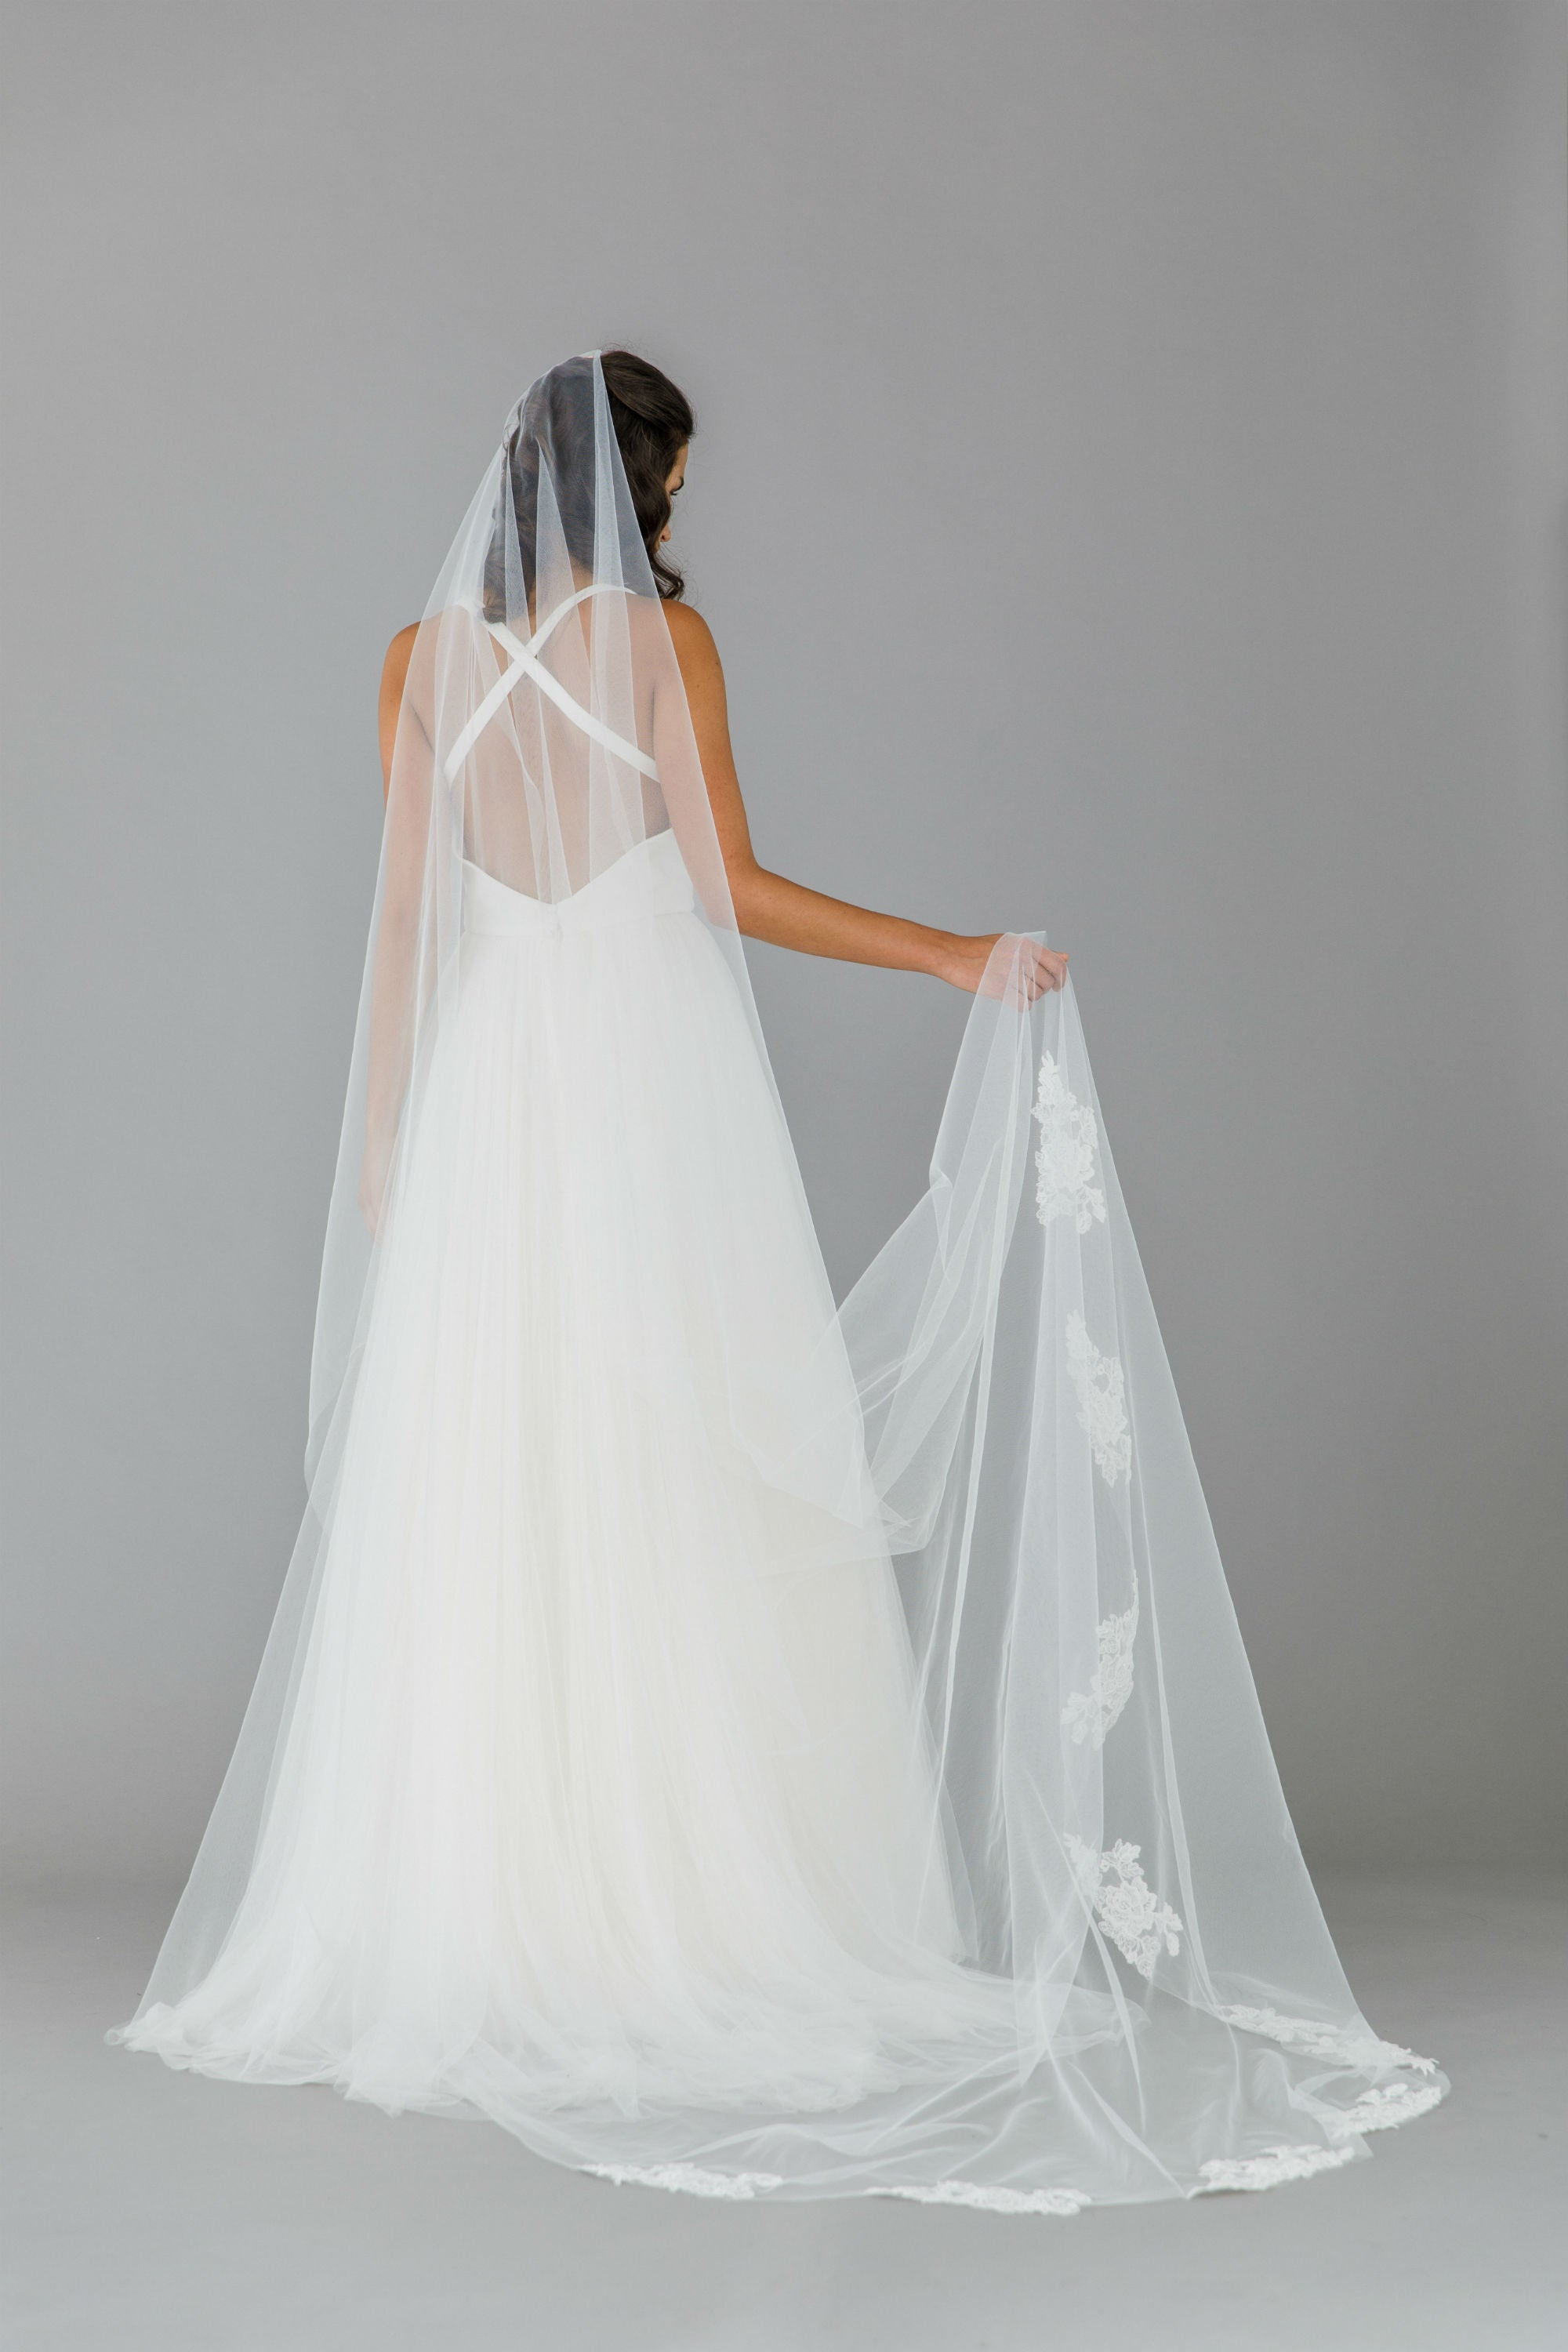 wedding veil FAQs